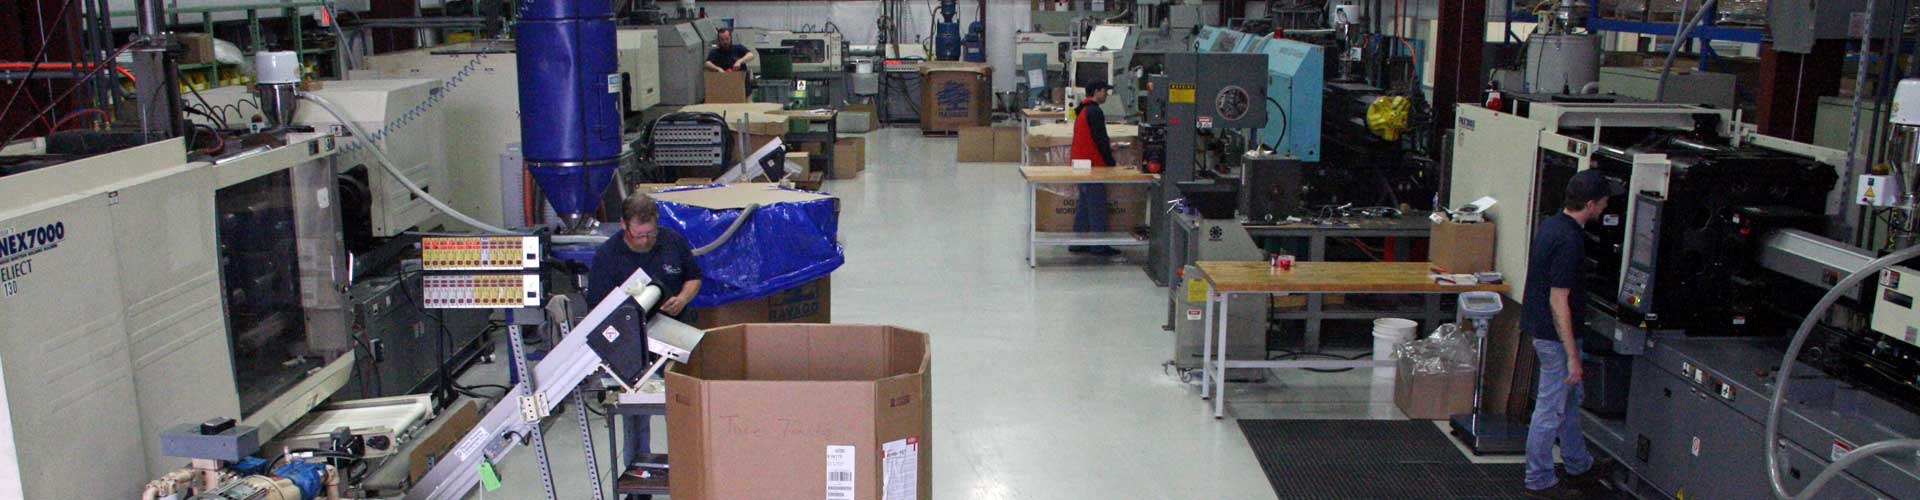 Platic Injection Molding